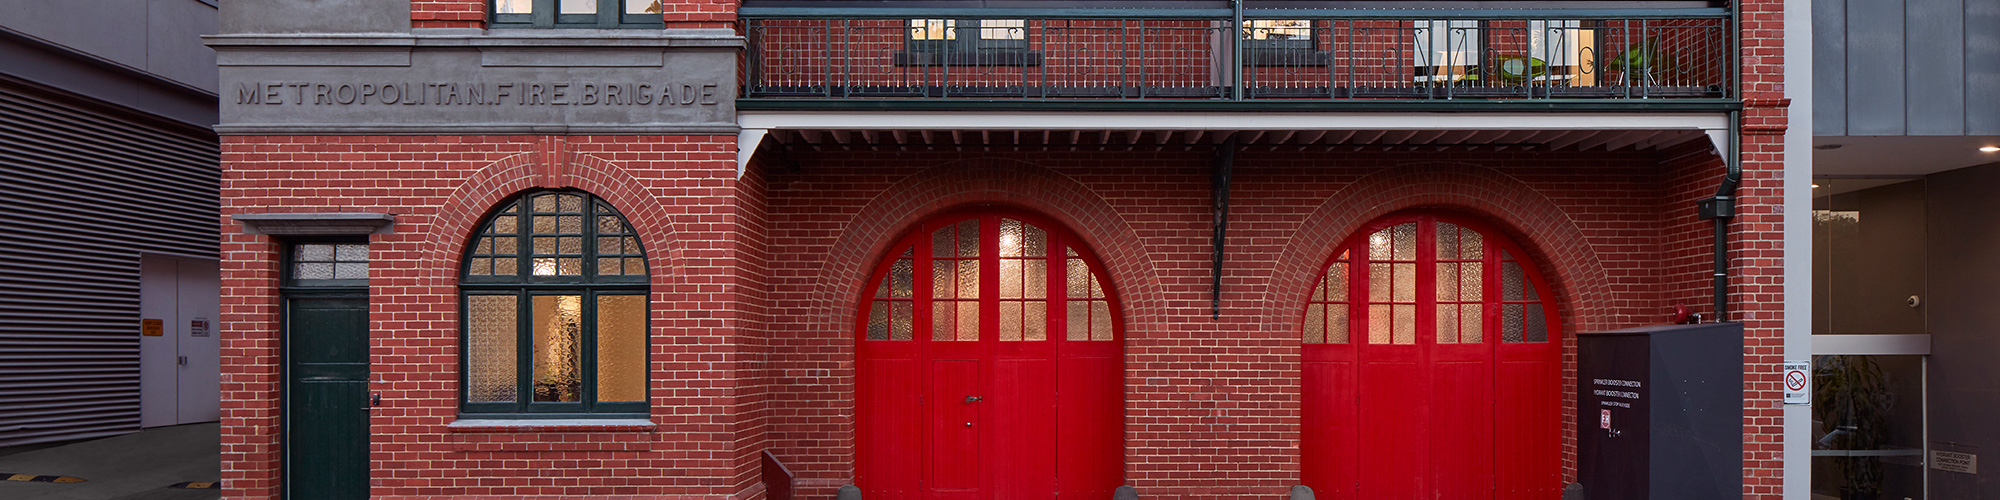 The Fire Station at Swinburne houses the Innovation Precinct and Design Factory Melbourne. The building was previously the Hawthorn Fire Station for 87 years, decommissioned in 1997.